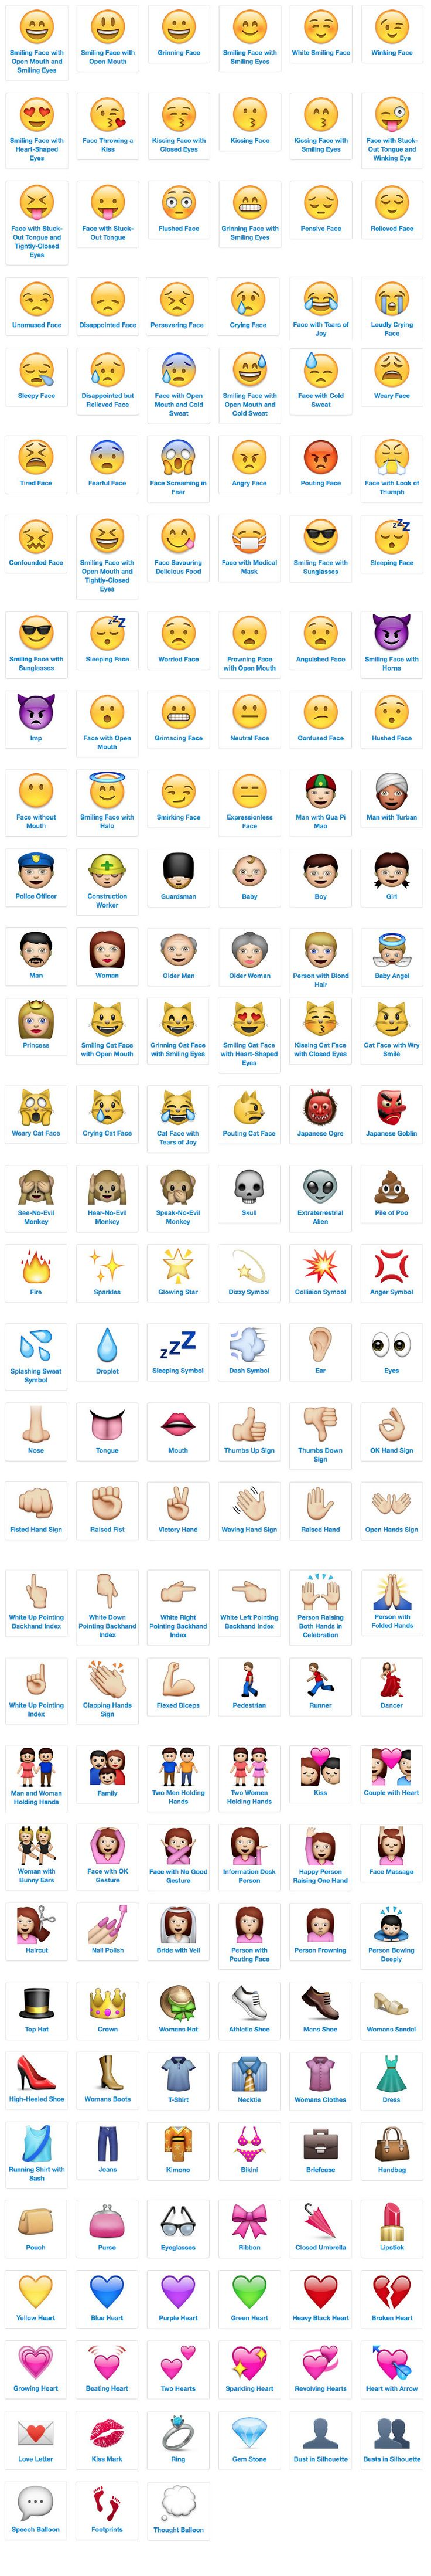 emoji people icons list with meanings and definitions